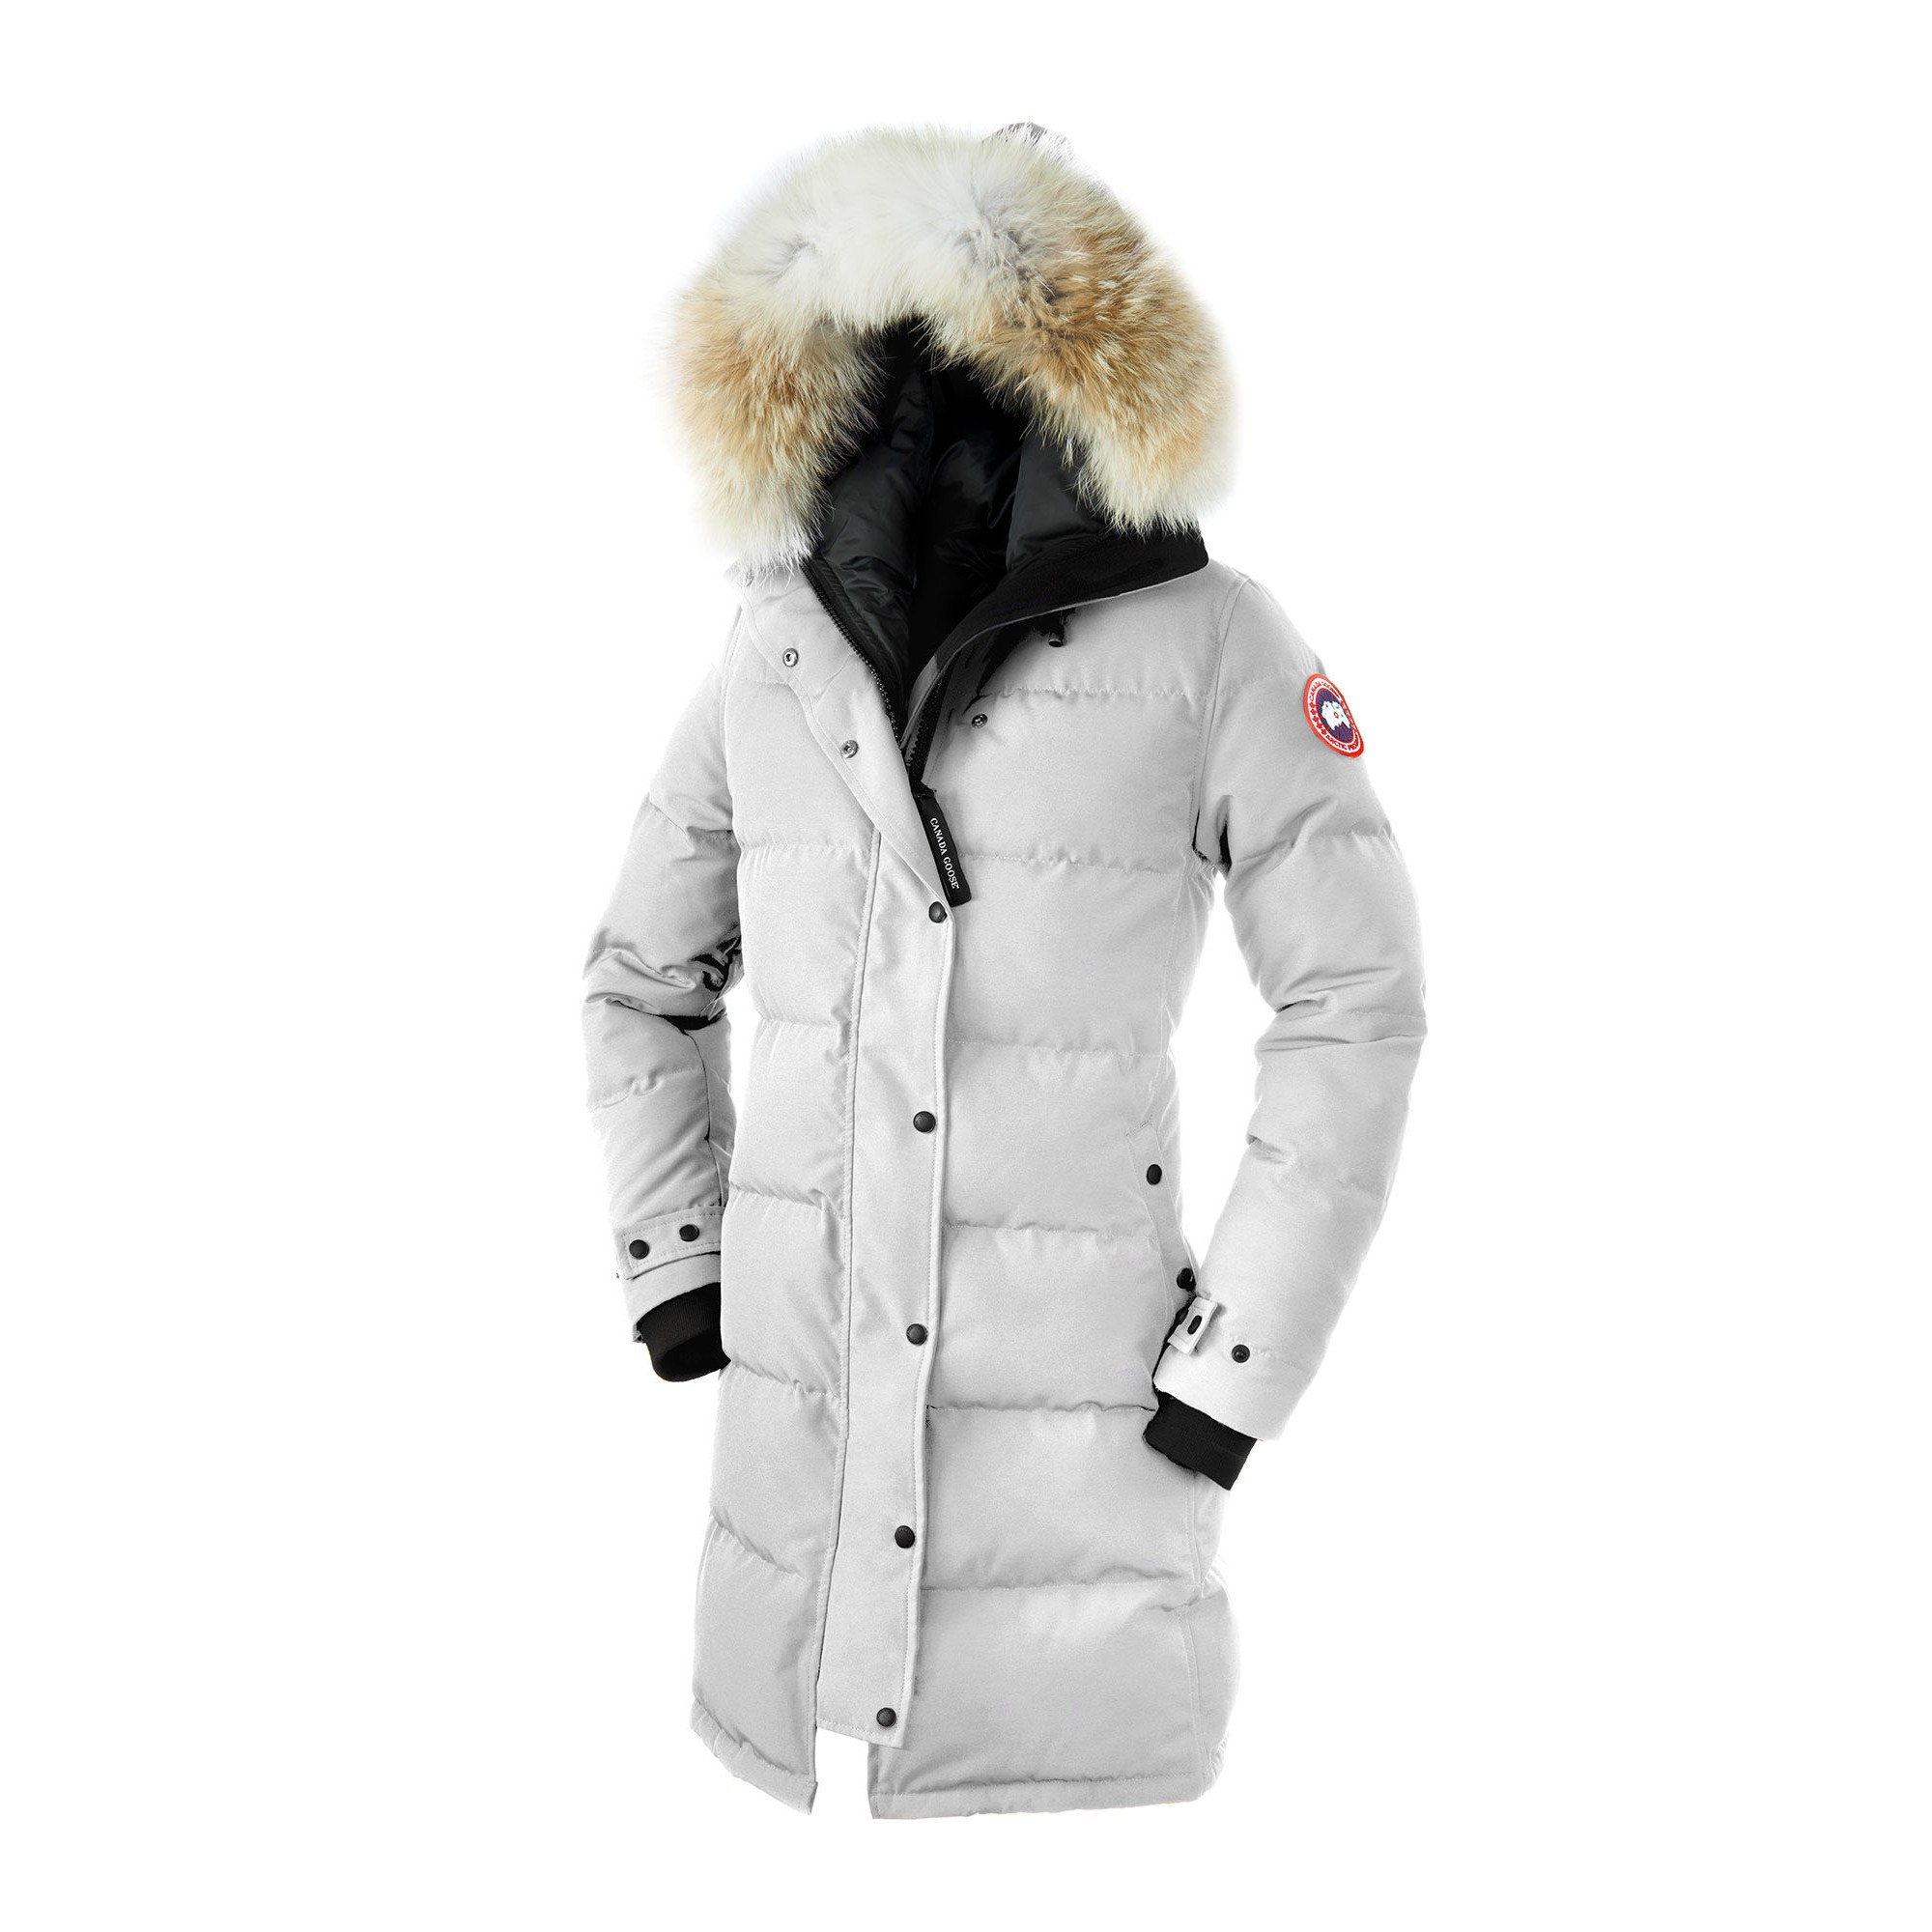 CANADA GOOSE SHELBURNE PARKA WOMEN White 3802L. Display Gallery Item 1 ... b1d6904895